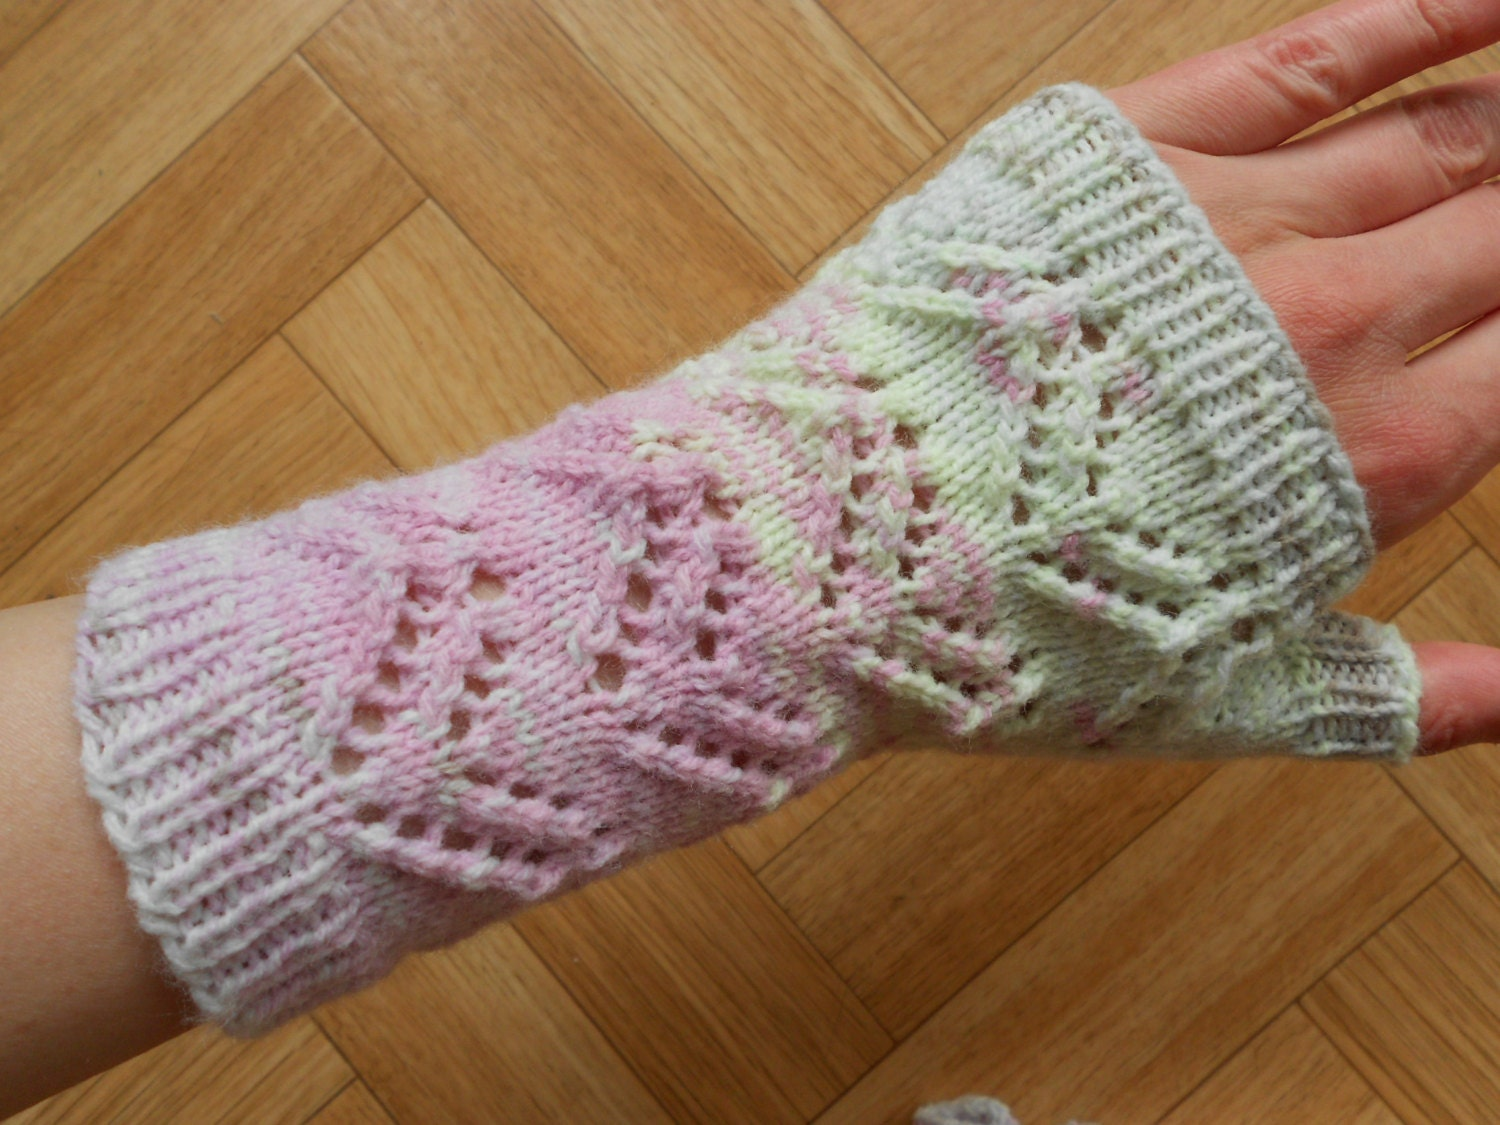 Lace Mittens Knitting Pattern : Lace fingerless mittens knitting pattern by CuteCreationsByLea